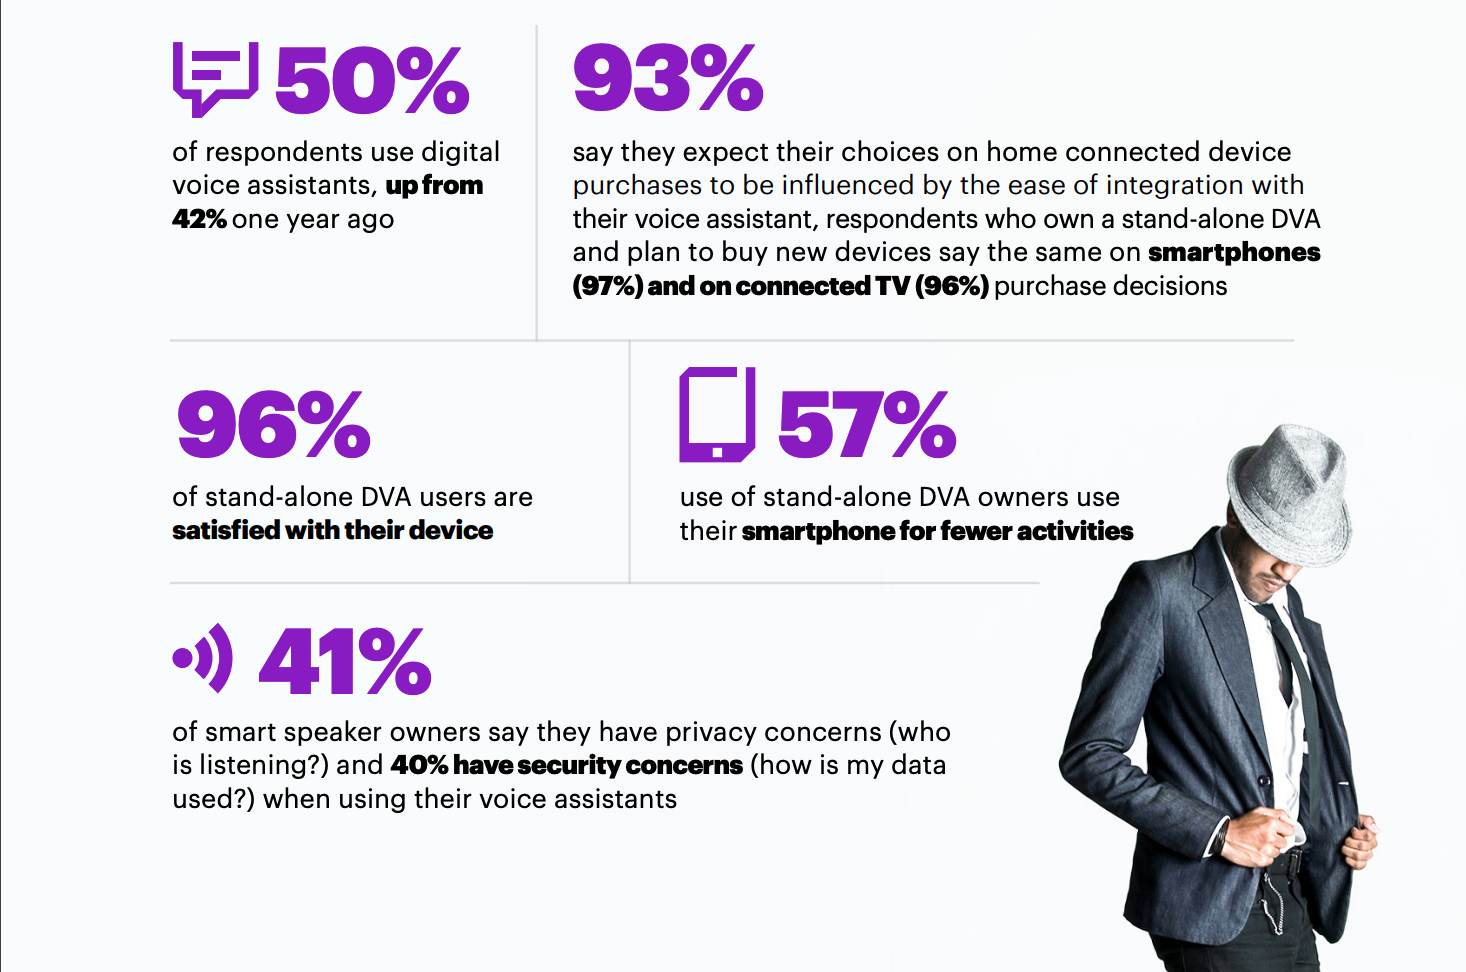 Accenture Digital Voice Assistant Adoption Infographic